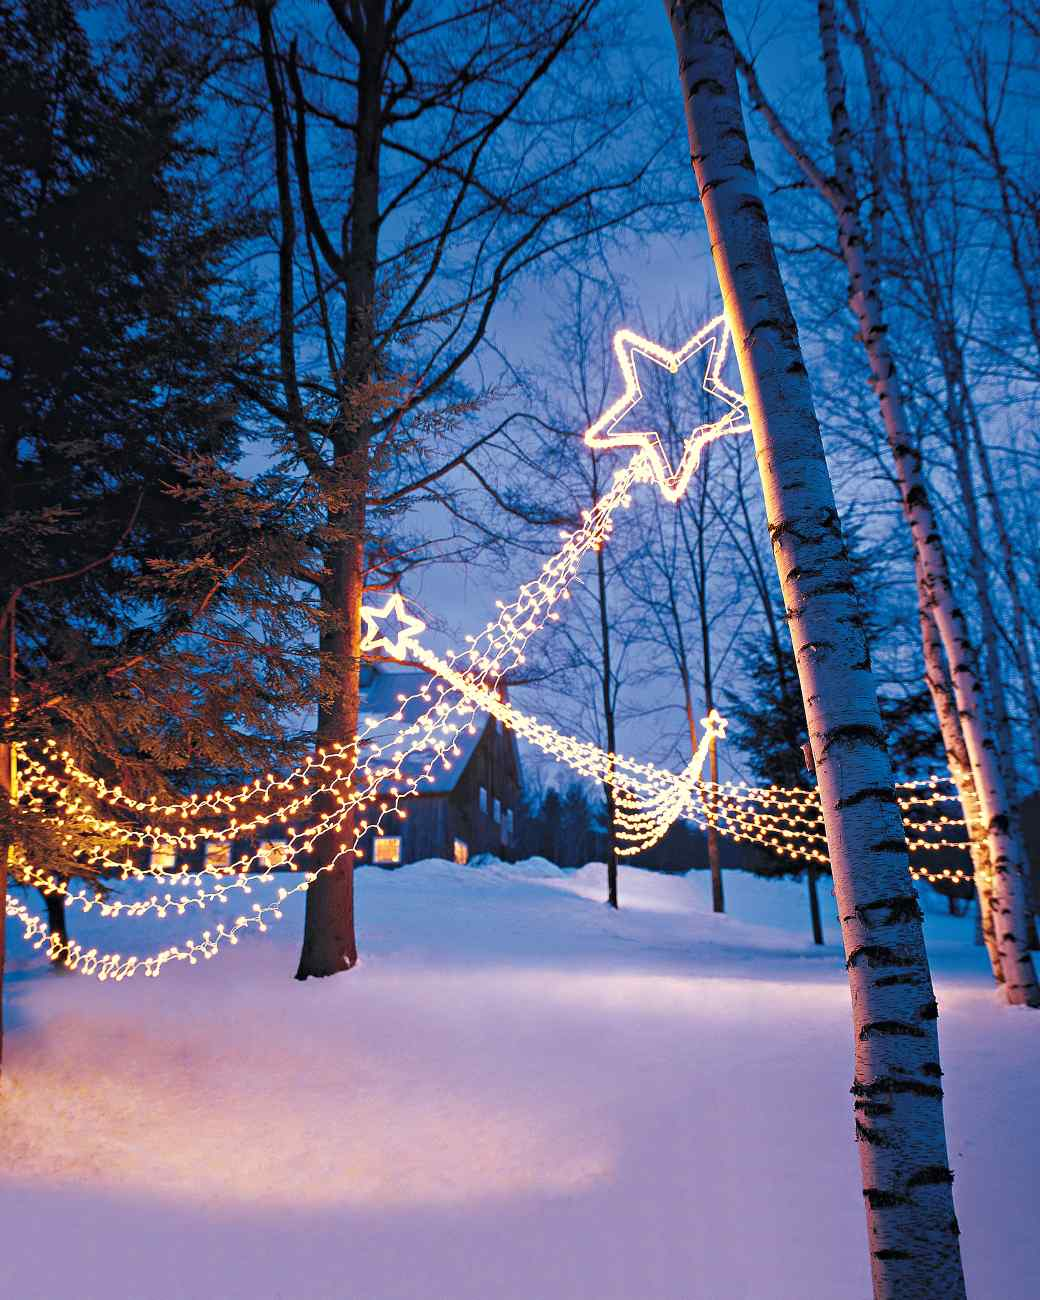 Outdoor Christmas Decorations: 15 Beautiful Christmas Outdoor Lighting DIY Ideas